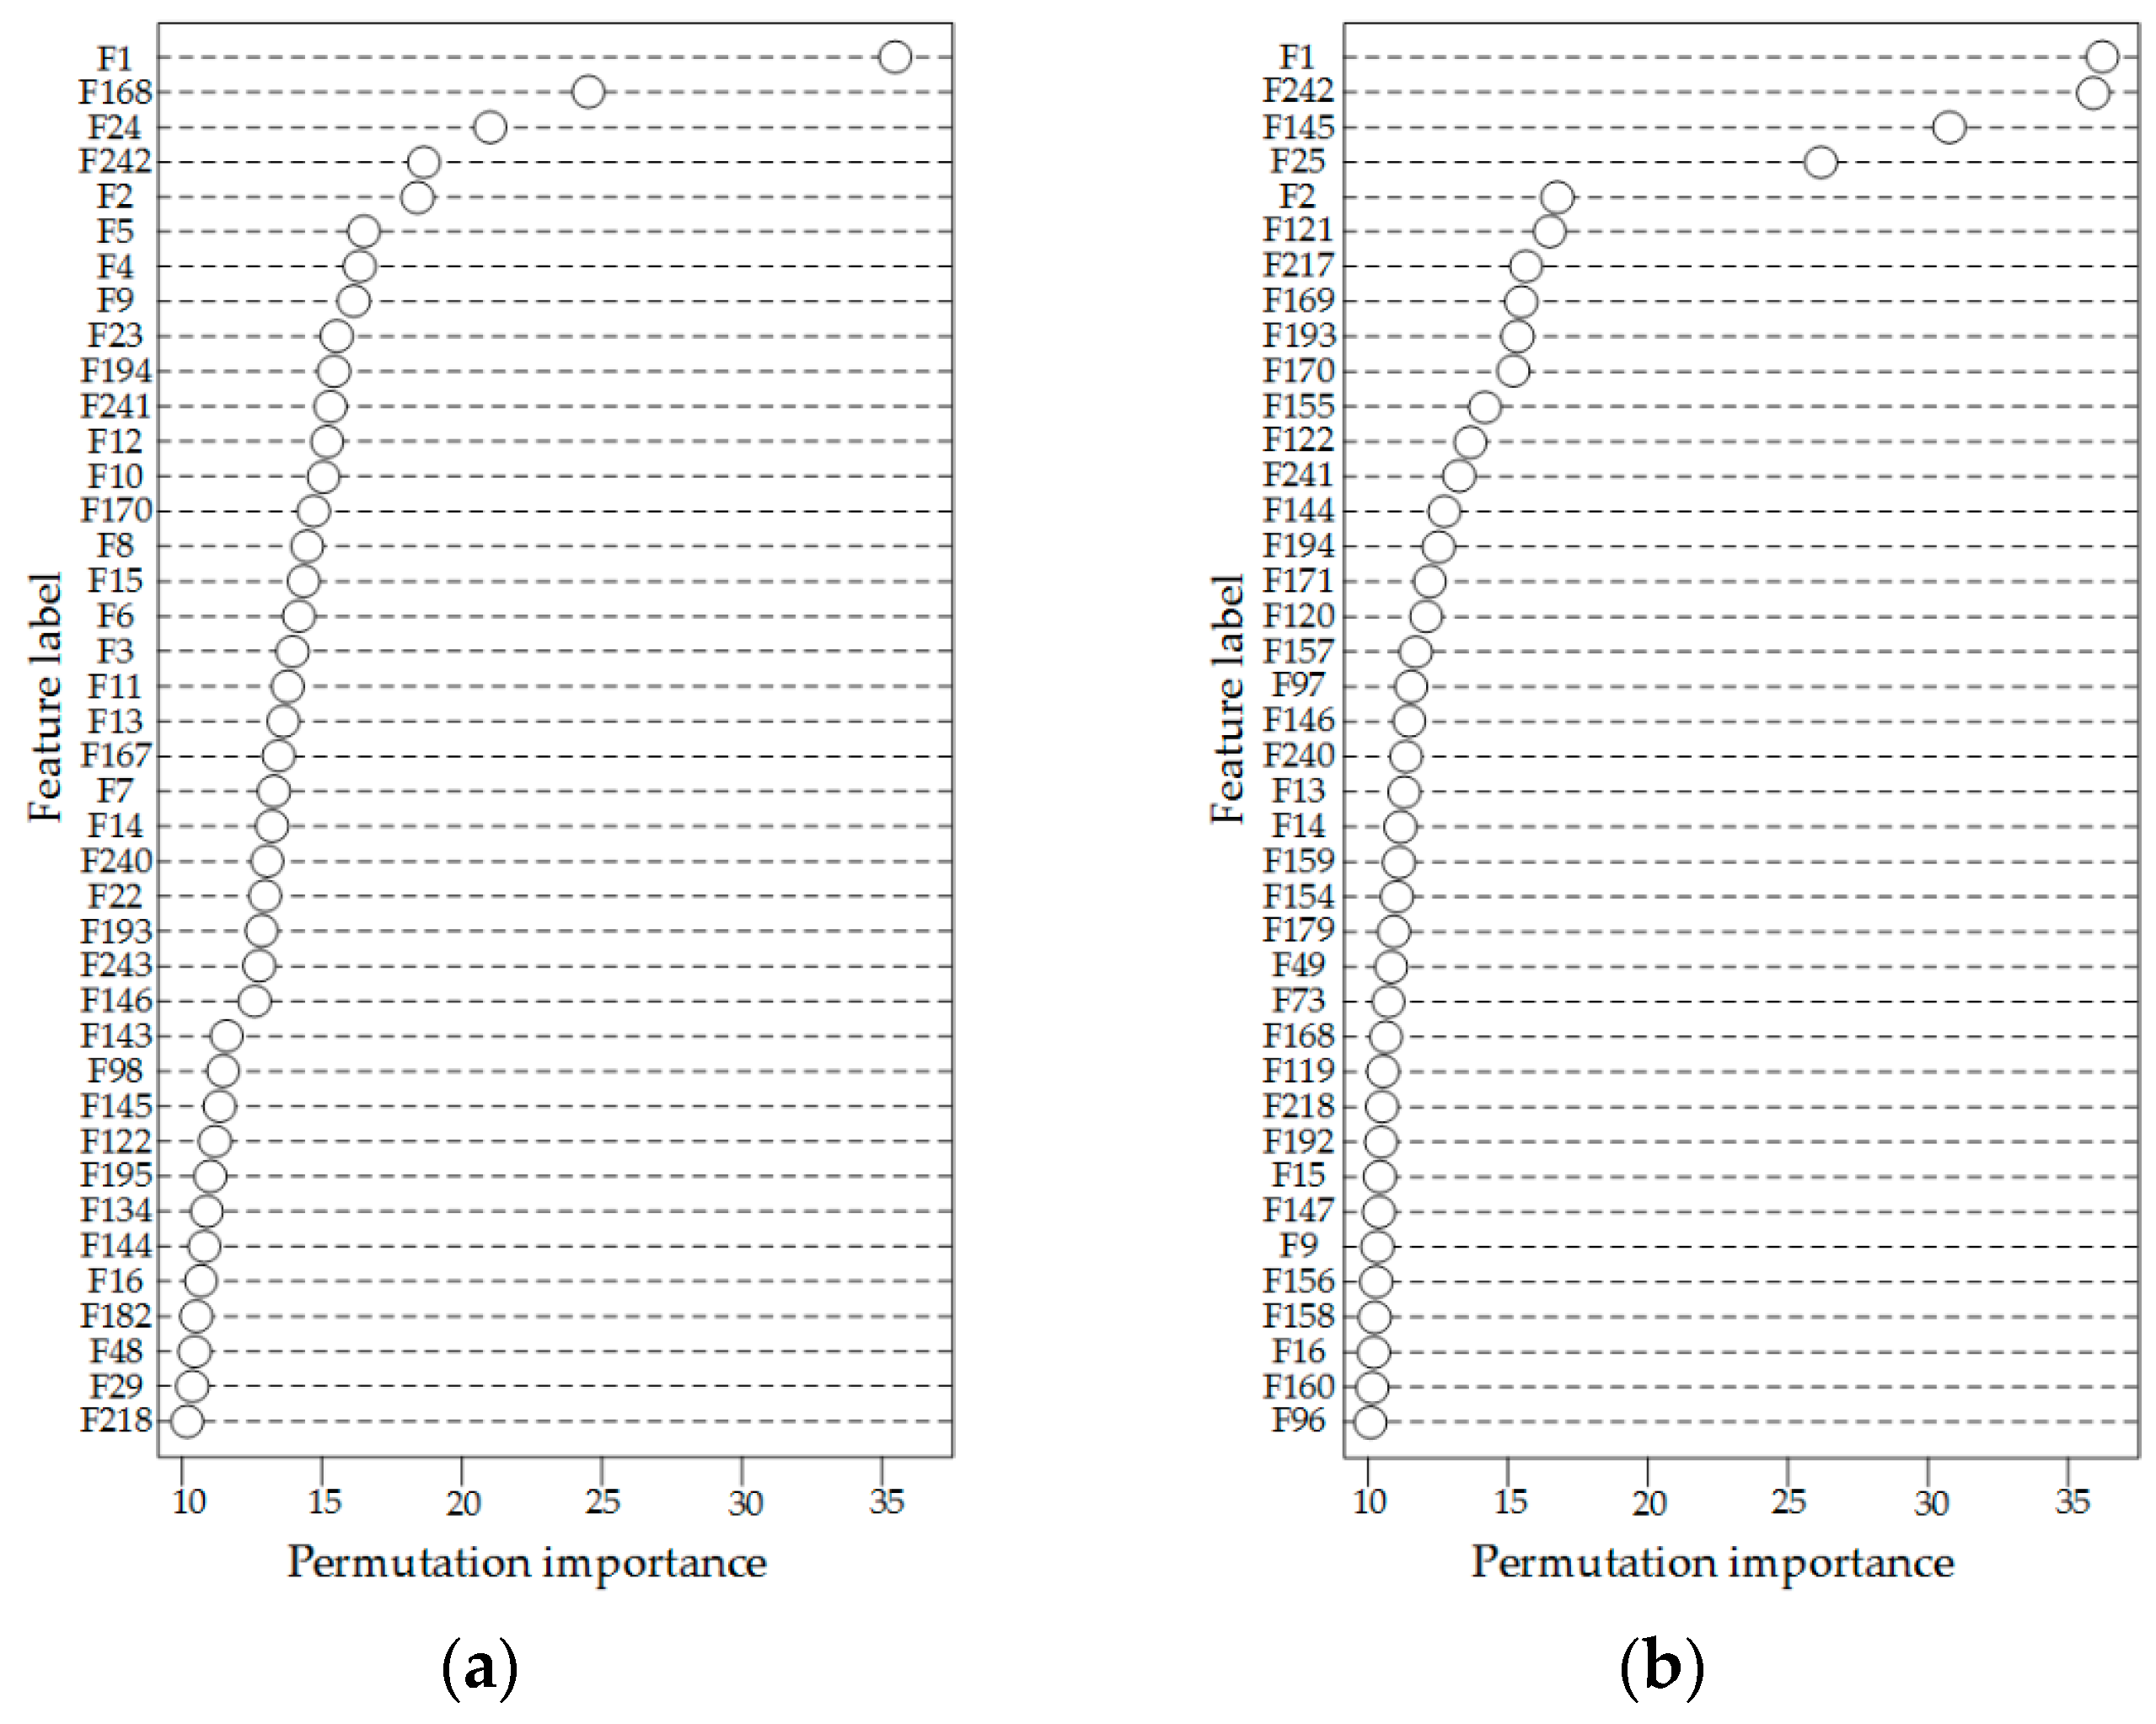 short term load forecasting using ann thesis Helsinki university of technology abstract of master's thesis author: pauli murto title of thesis: neural network models for short-term load forecasting.